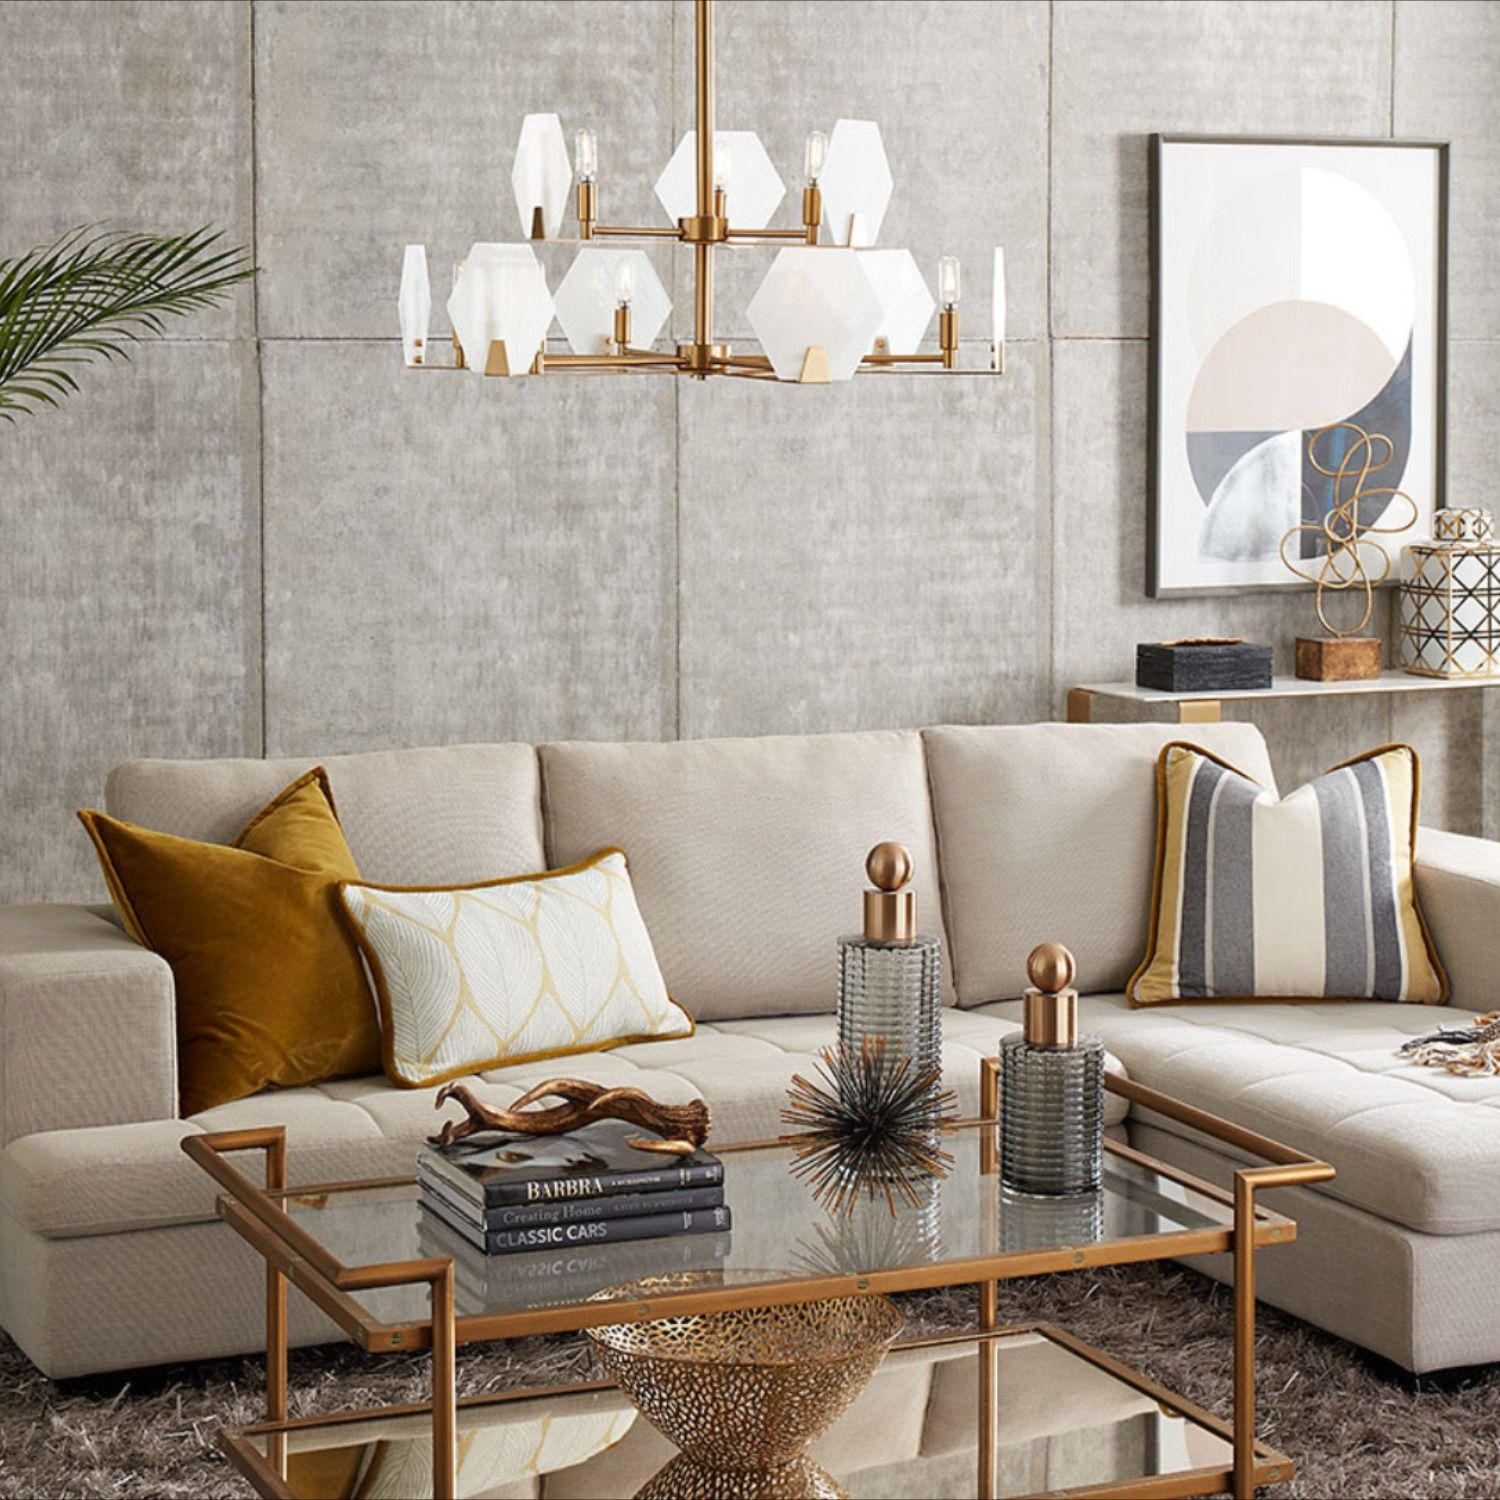 Luxury Living Room Design Accented By Metallic Elements Matching The Geometric Golden Chand Luxury Living Room Luxury Living Room Decor Cream Couch Living Room Metallic living room decor